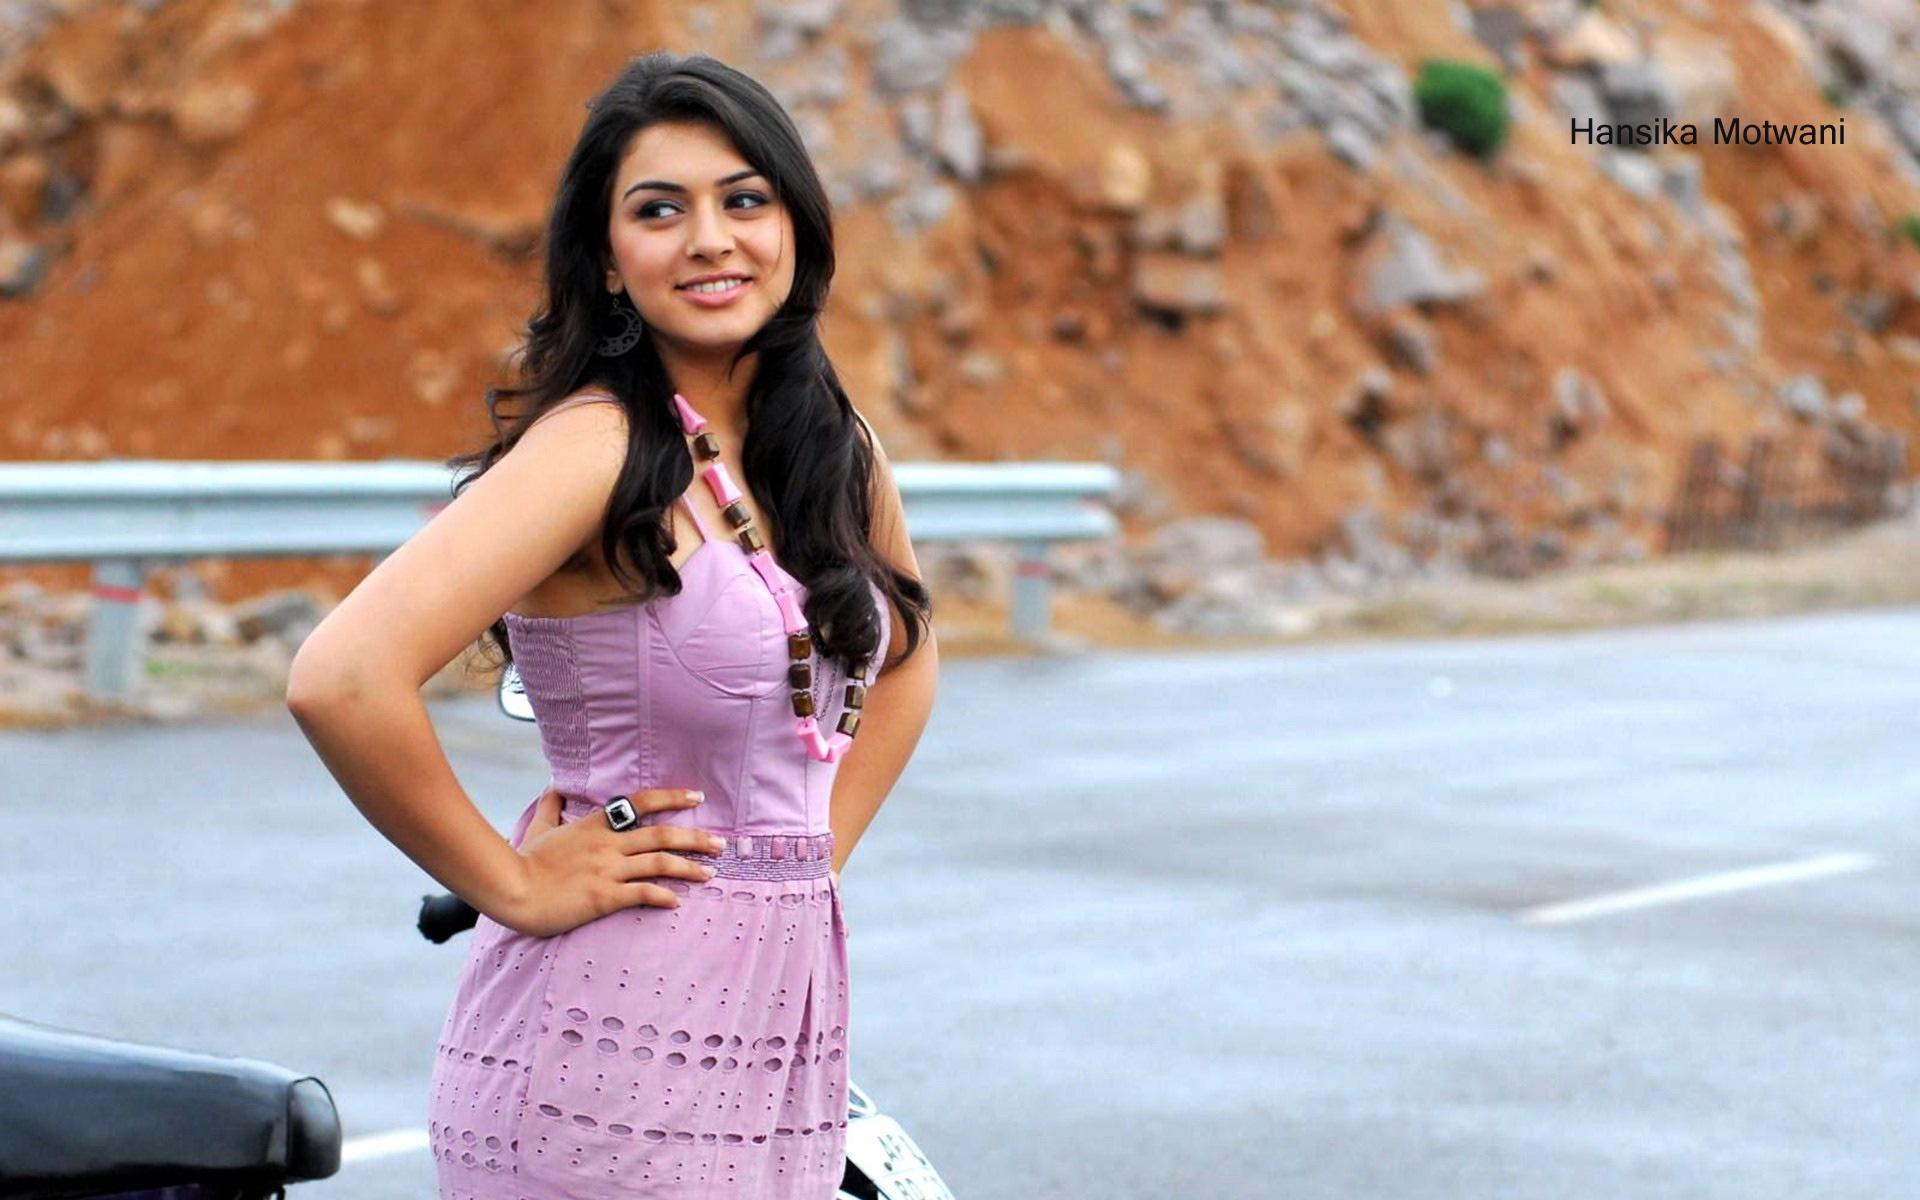 More Wallpaper Collections - South Indian Actress Hd Img , HD Wallpaper & Backgrounds